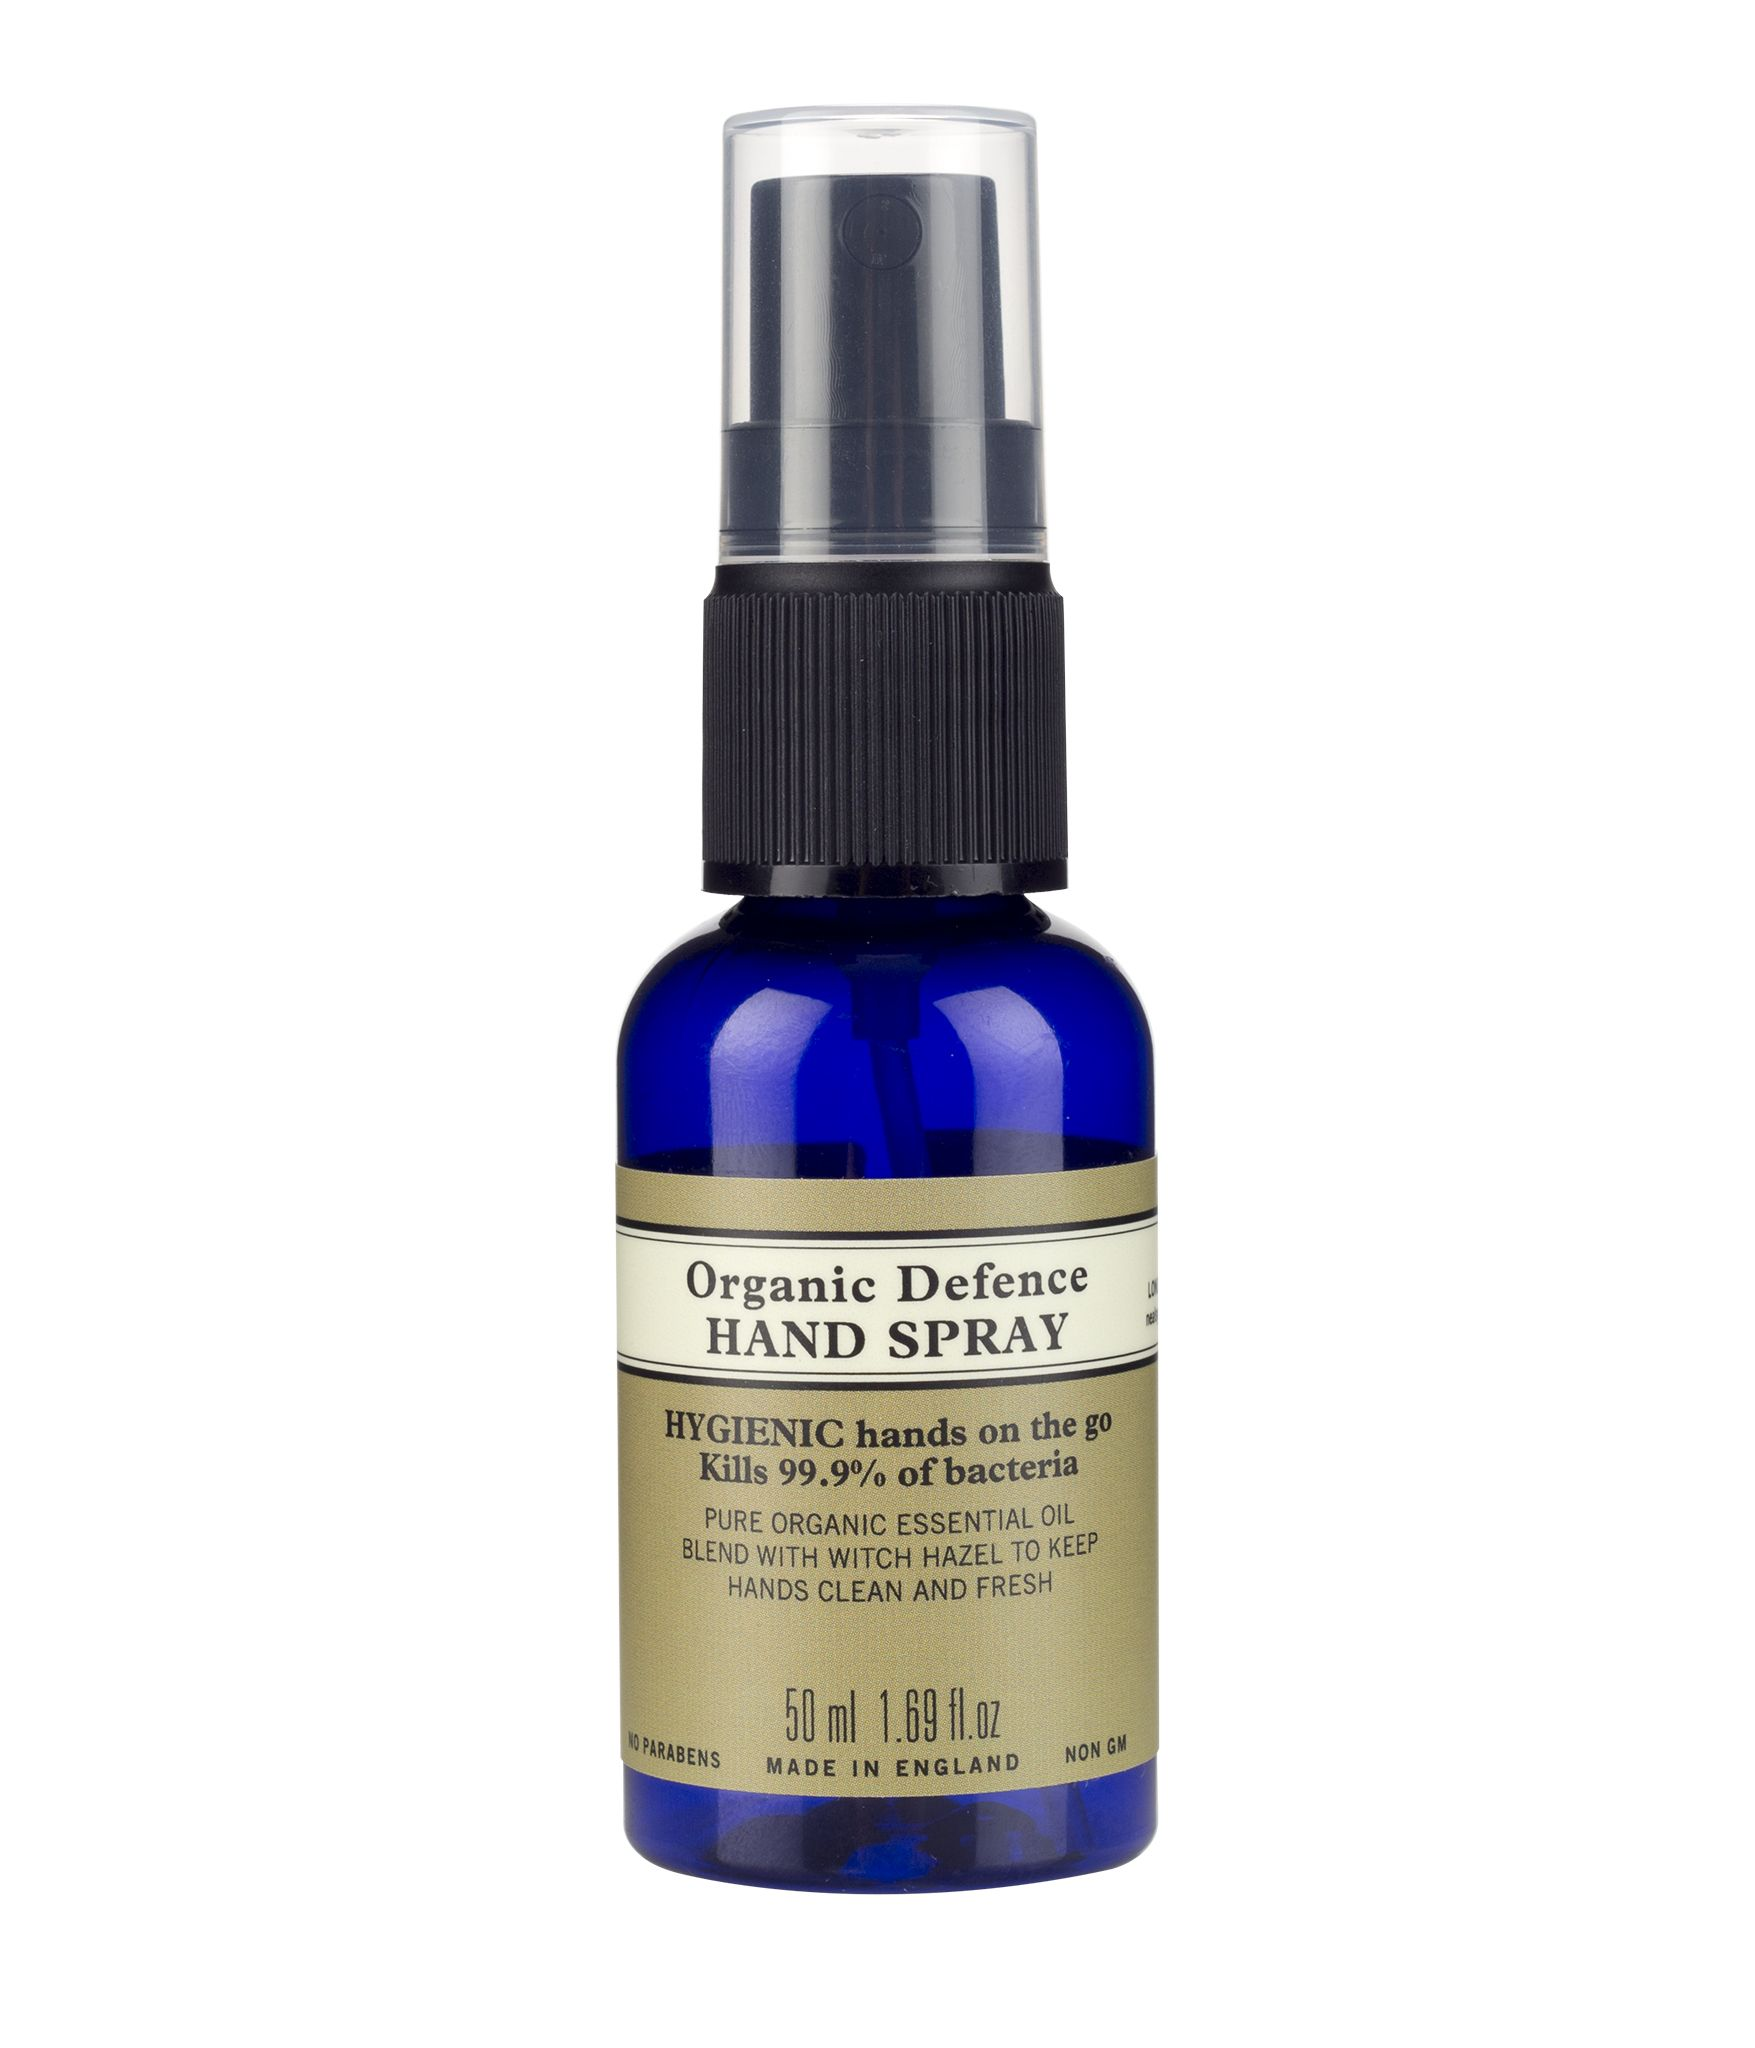 Organic Defence Hand Spray 50ml Hand Sanitizer Neals Yard